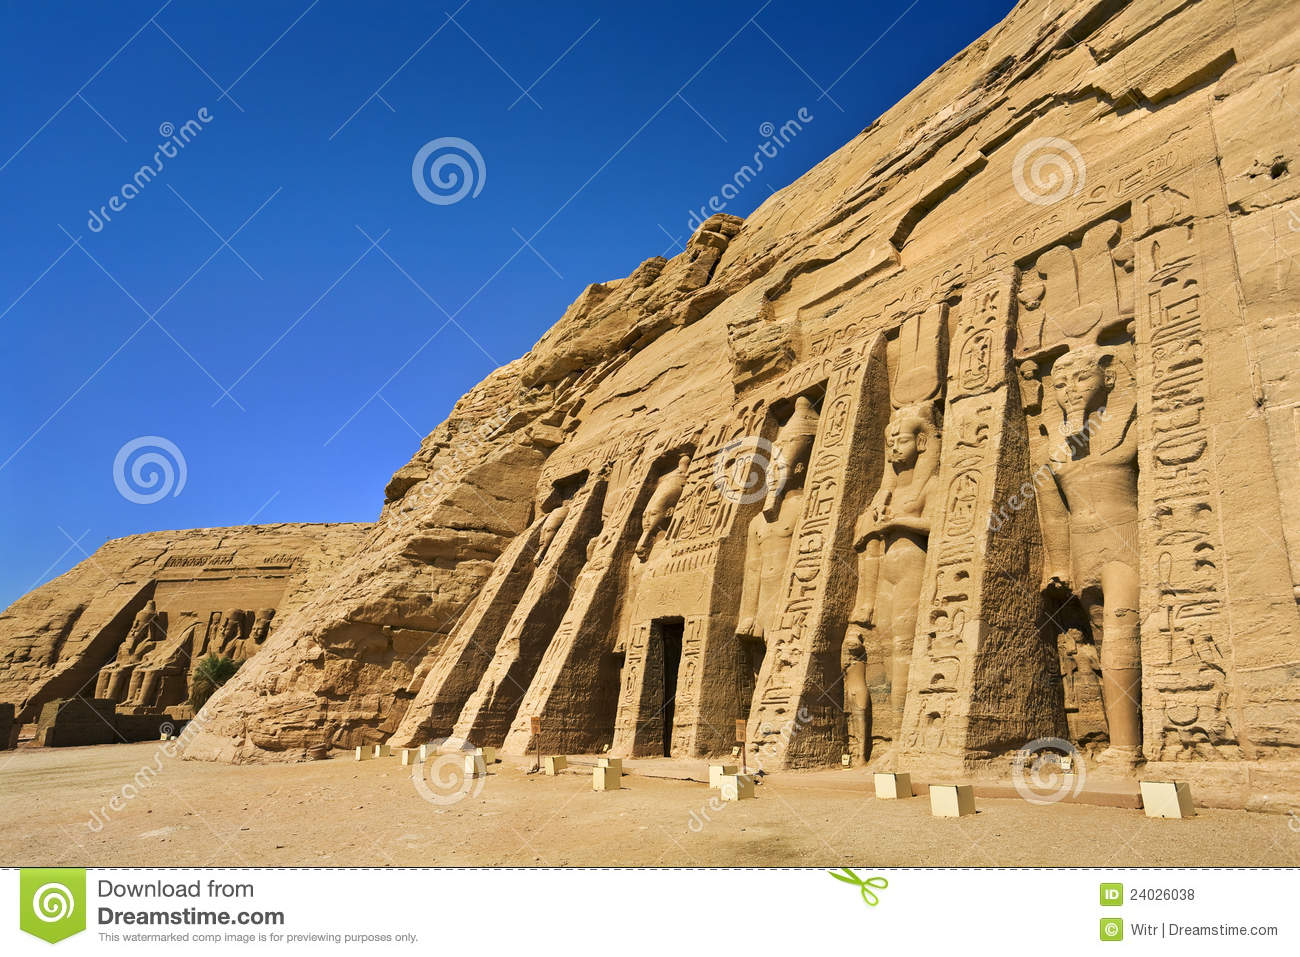 Facade of the Small Temple at Abu Simbel